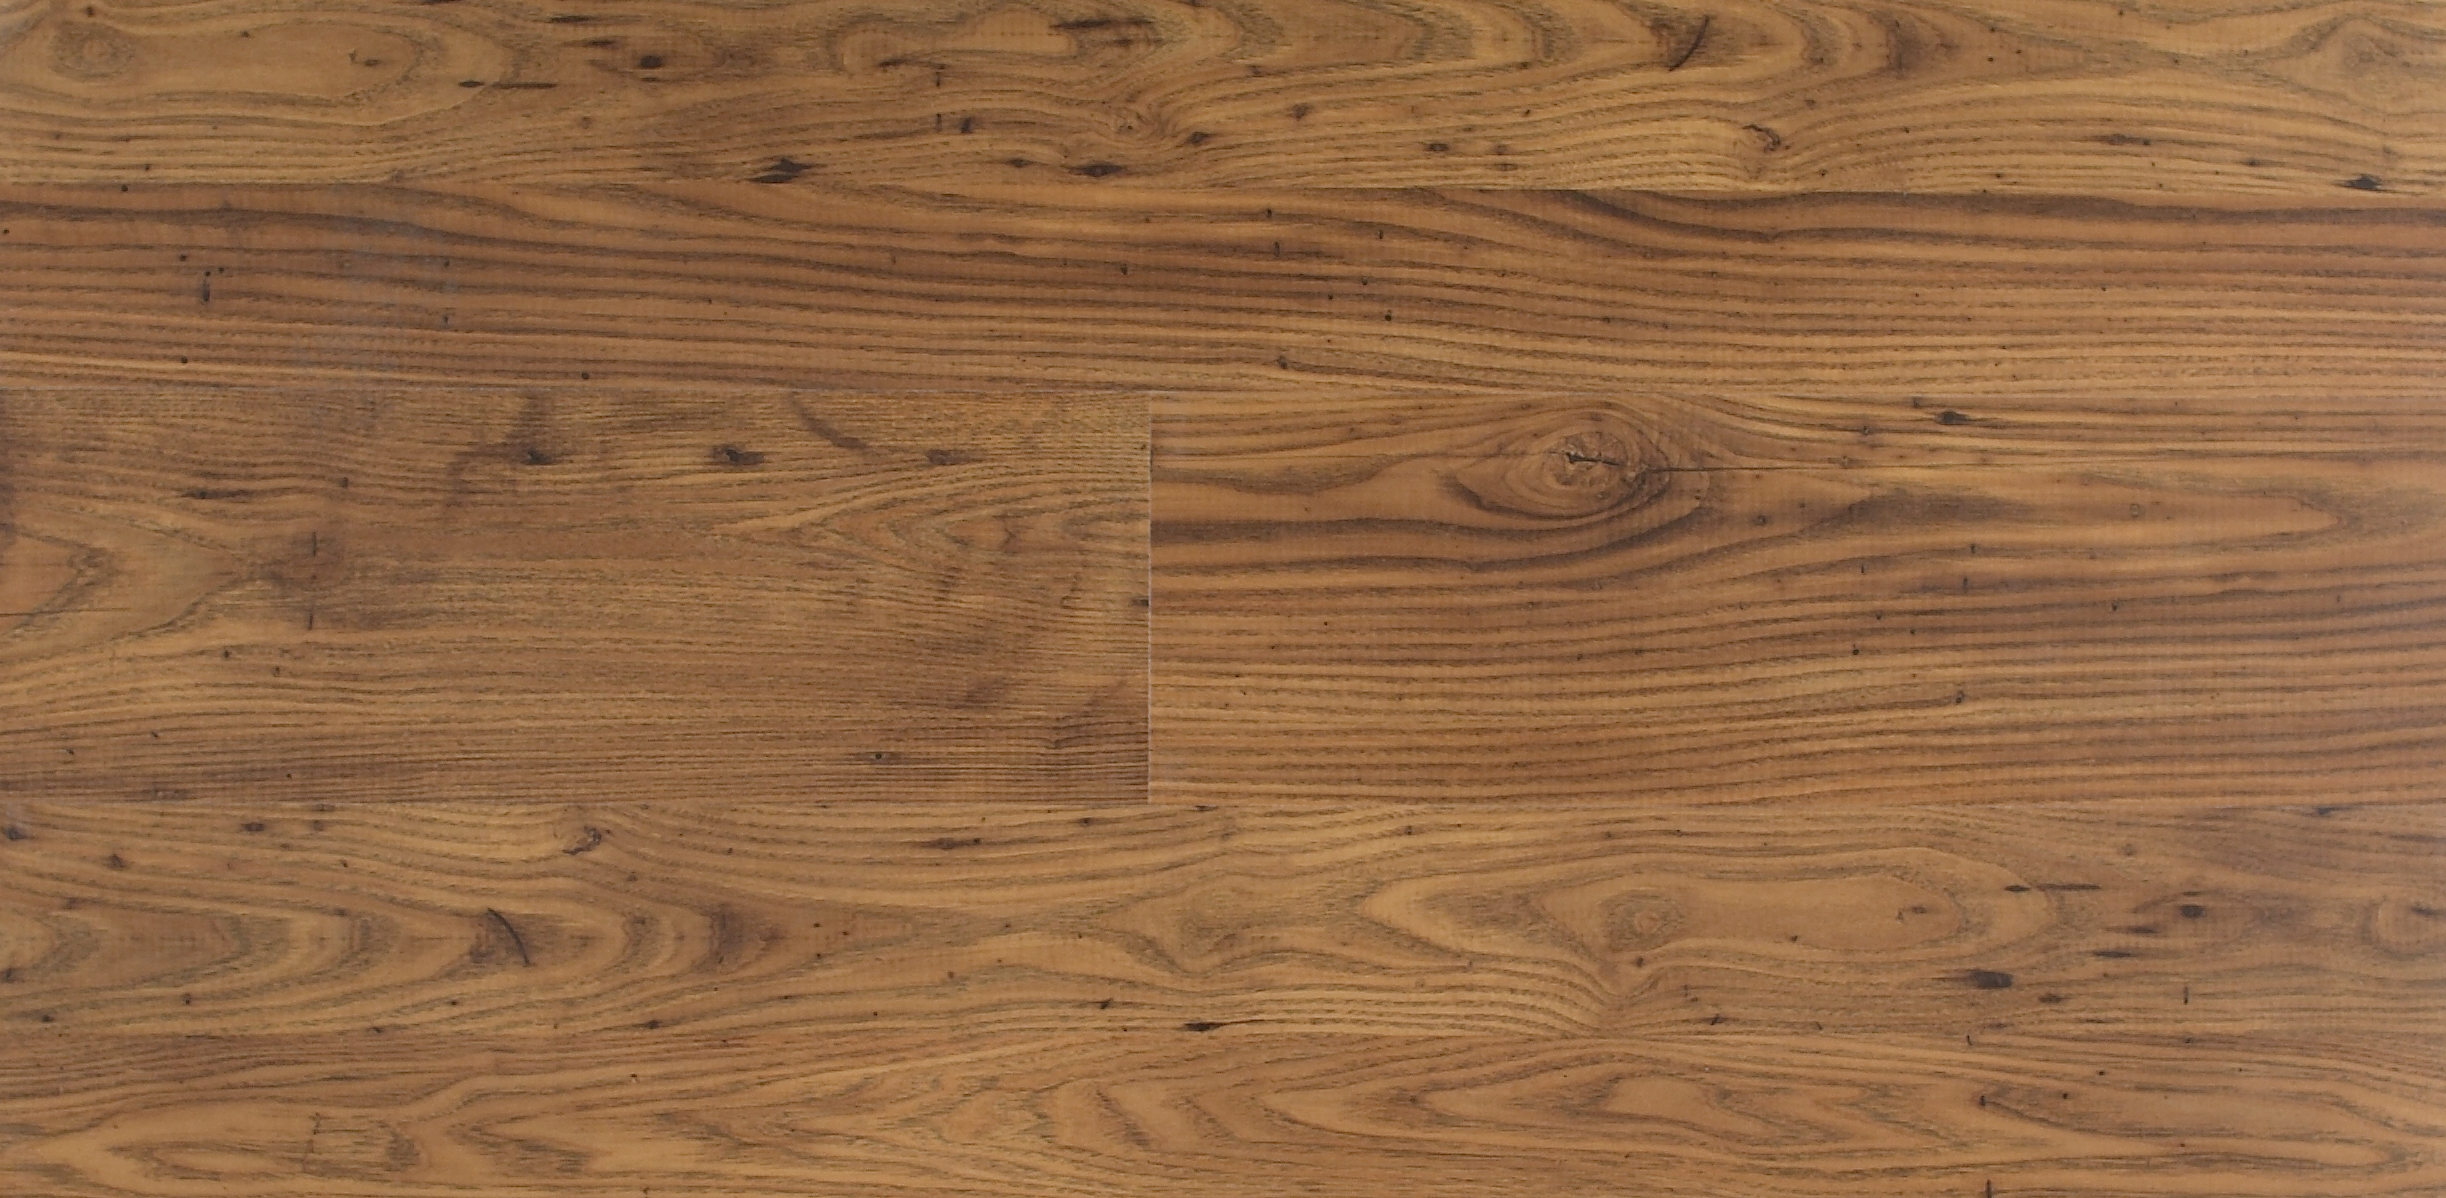 Image Gallery Wooden Texture